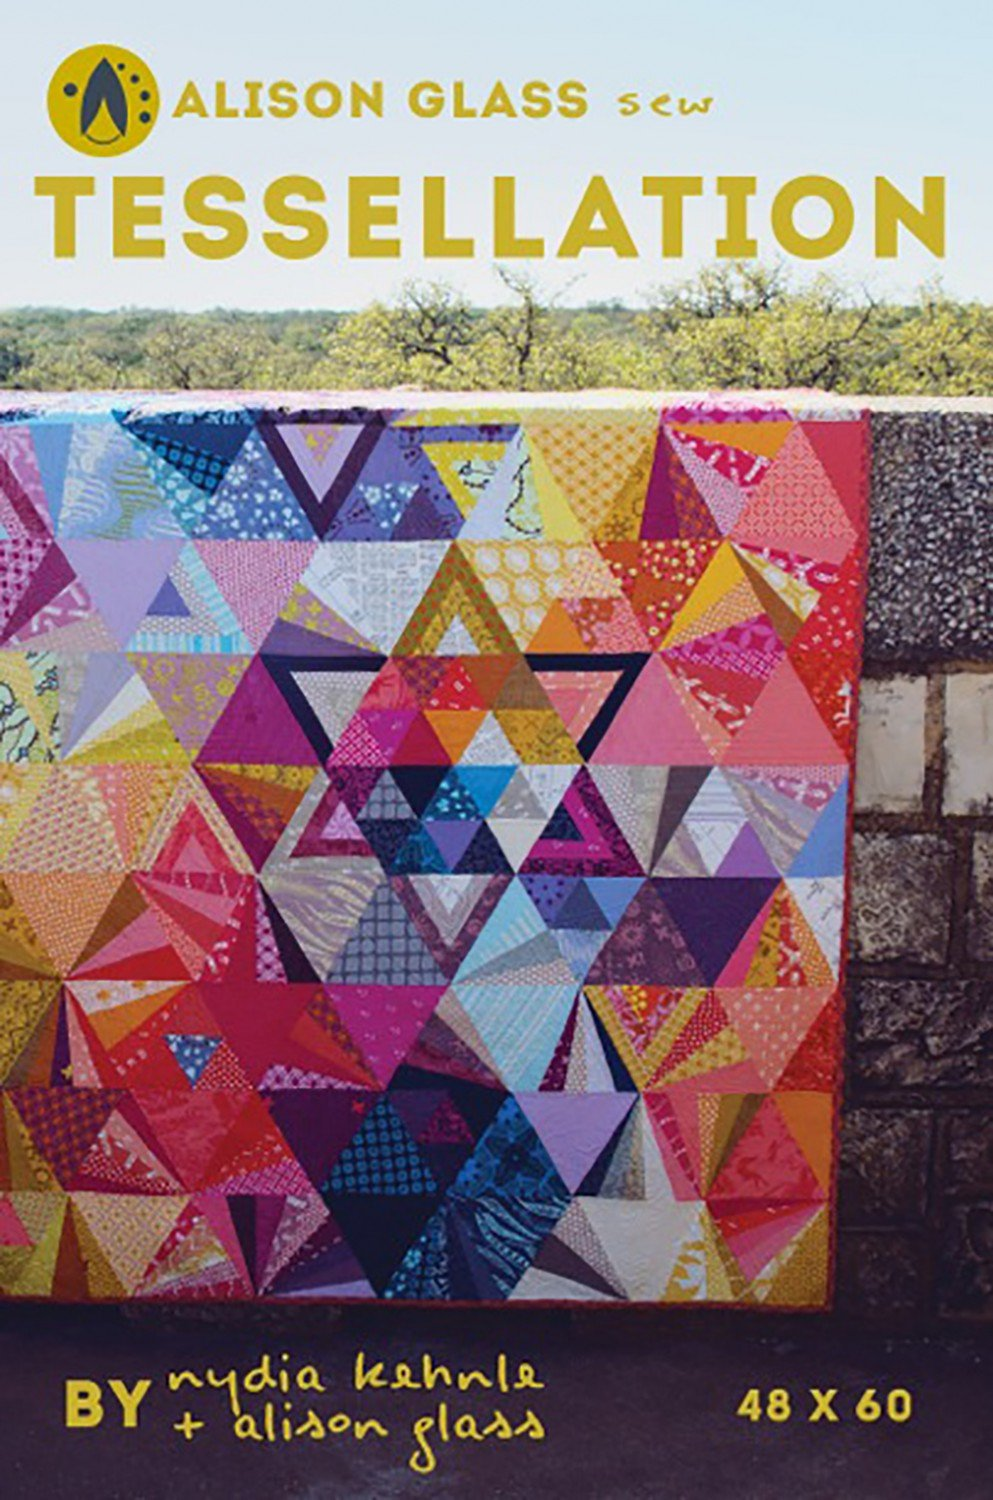 TESSELLATION by Alison Glass